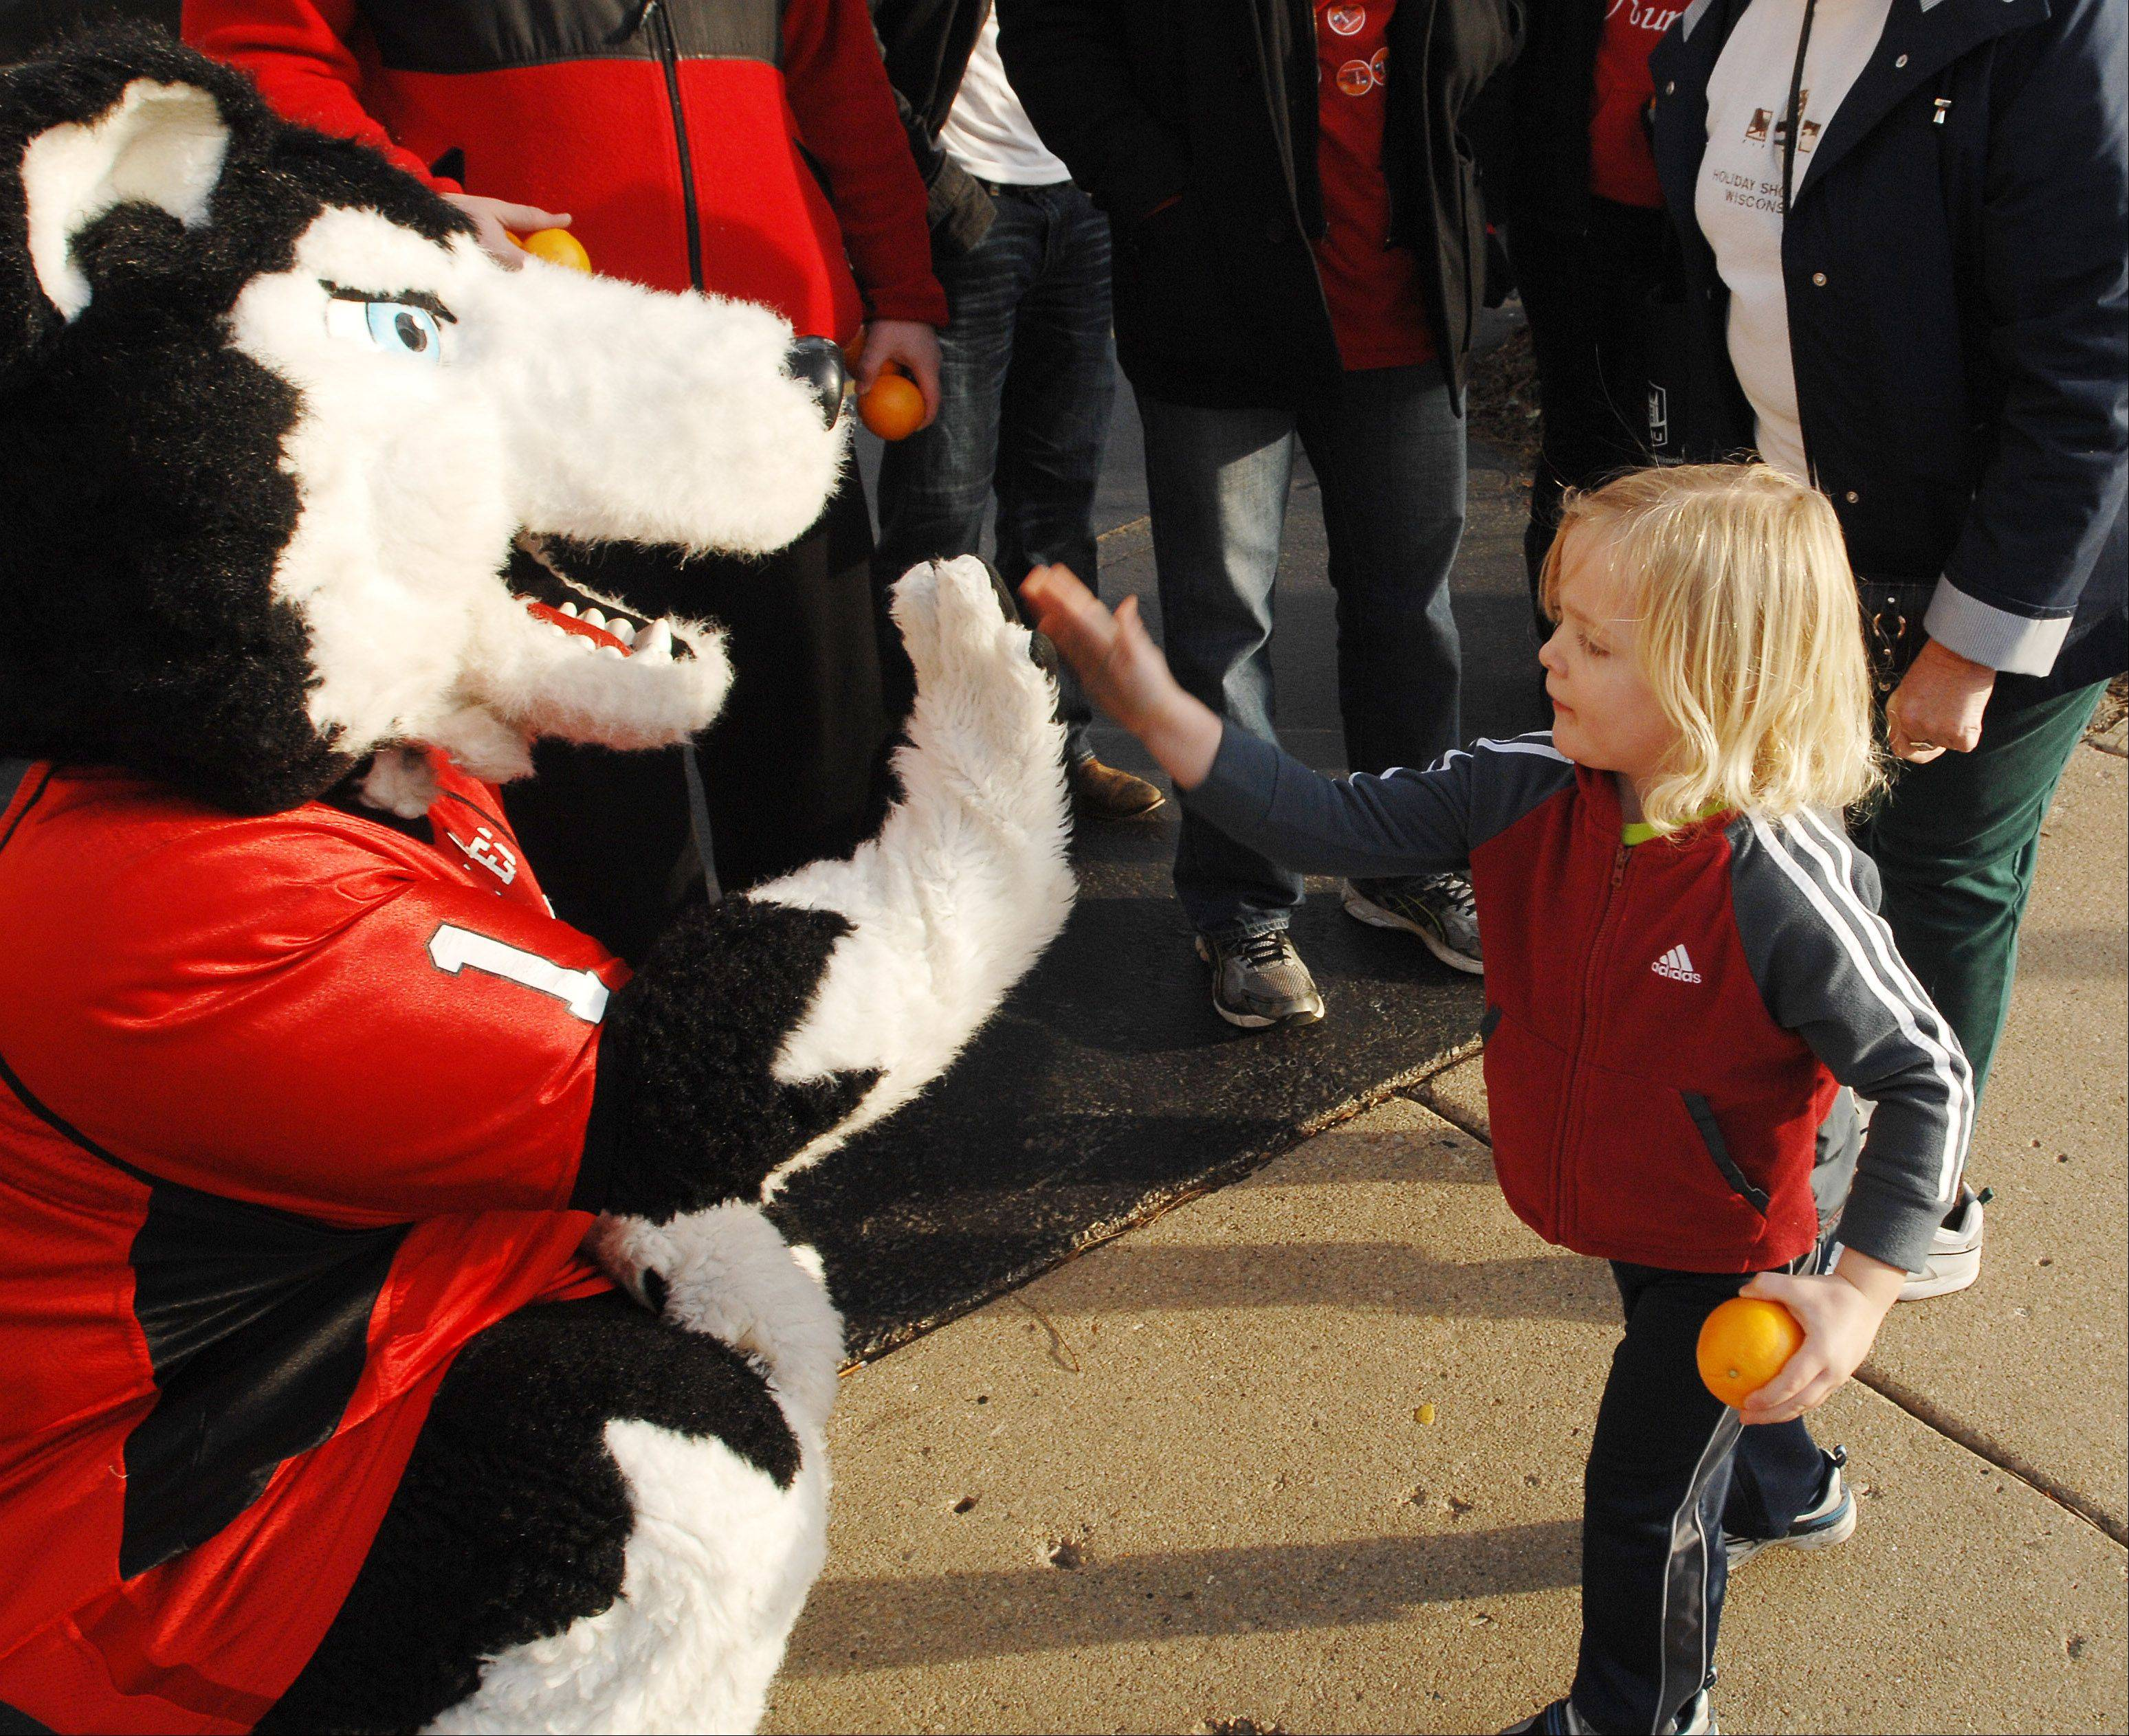 Noah Strandberg, 3, of Warrenville gets a high-five from mascot Victor E. Huskie. A group of Northern Illinois University students, along with mascot Victor E. Huskie were in Naperville Friday. They were promoting the team�s trip to the Orange Bowl and handing out oranges to fans. They handed out almost 1800 oranges throughout the day.